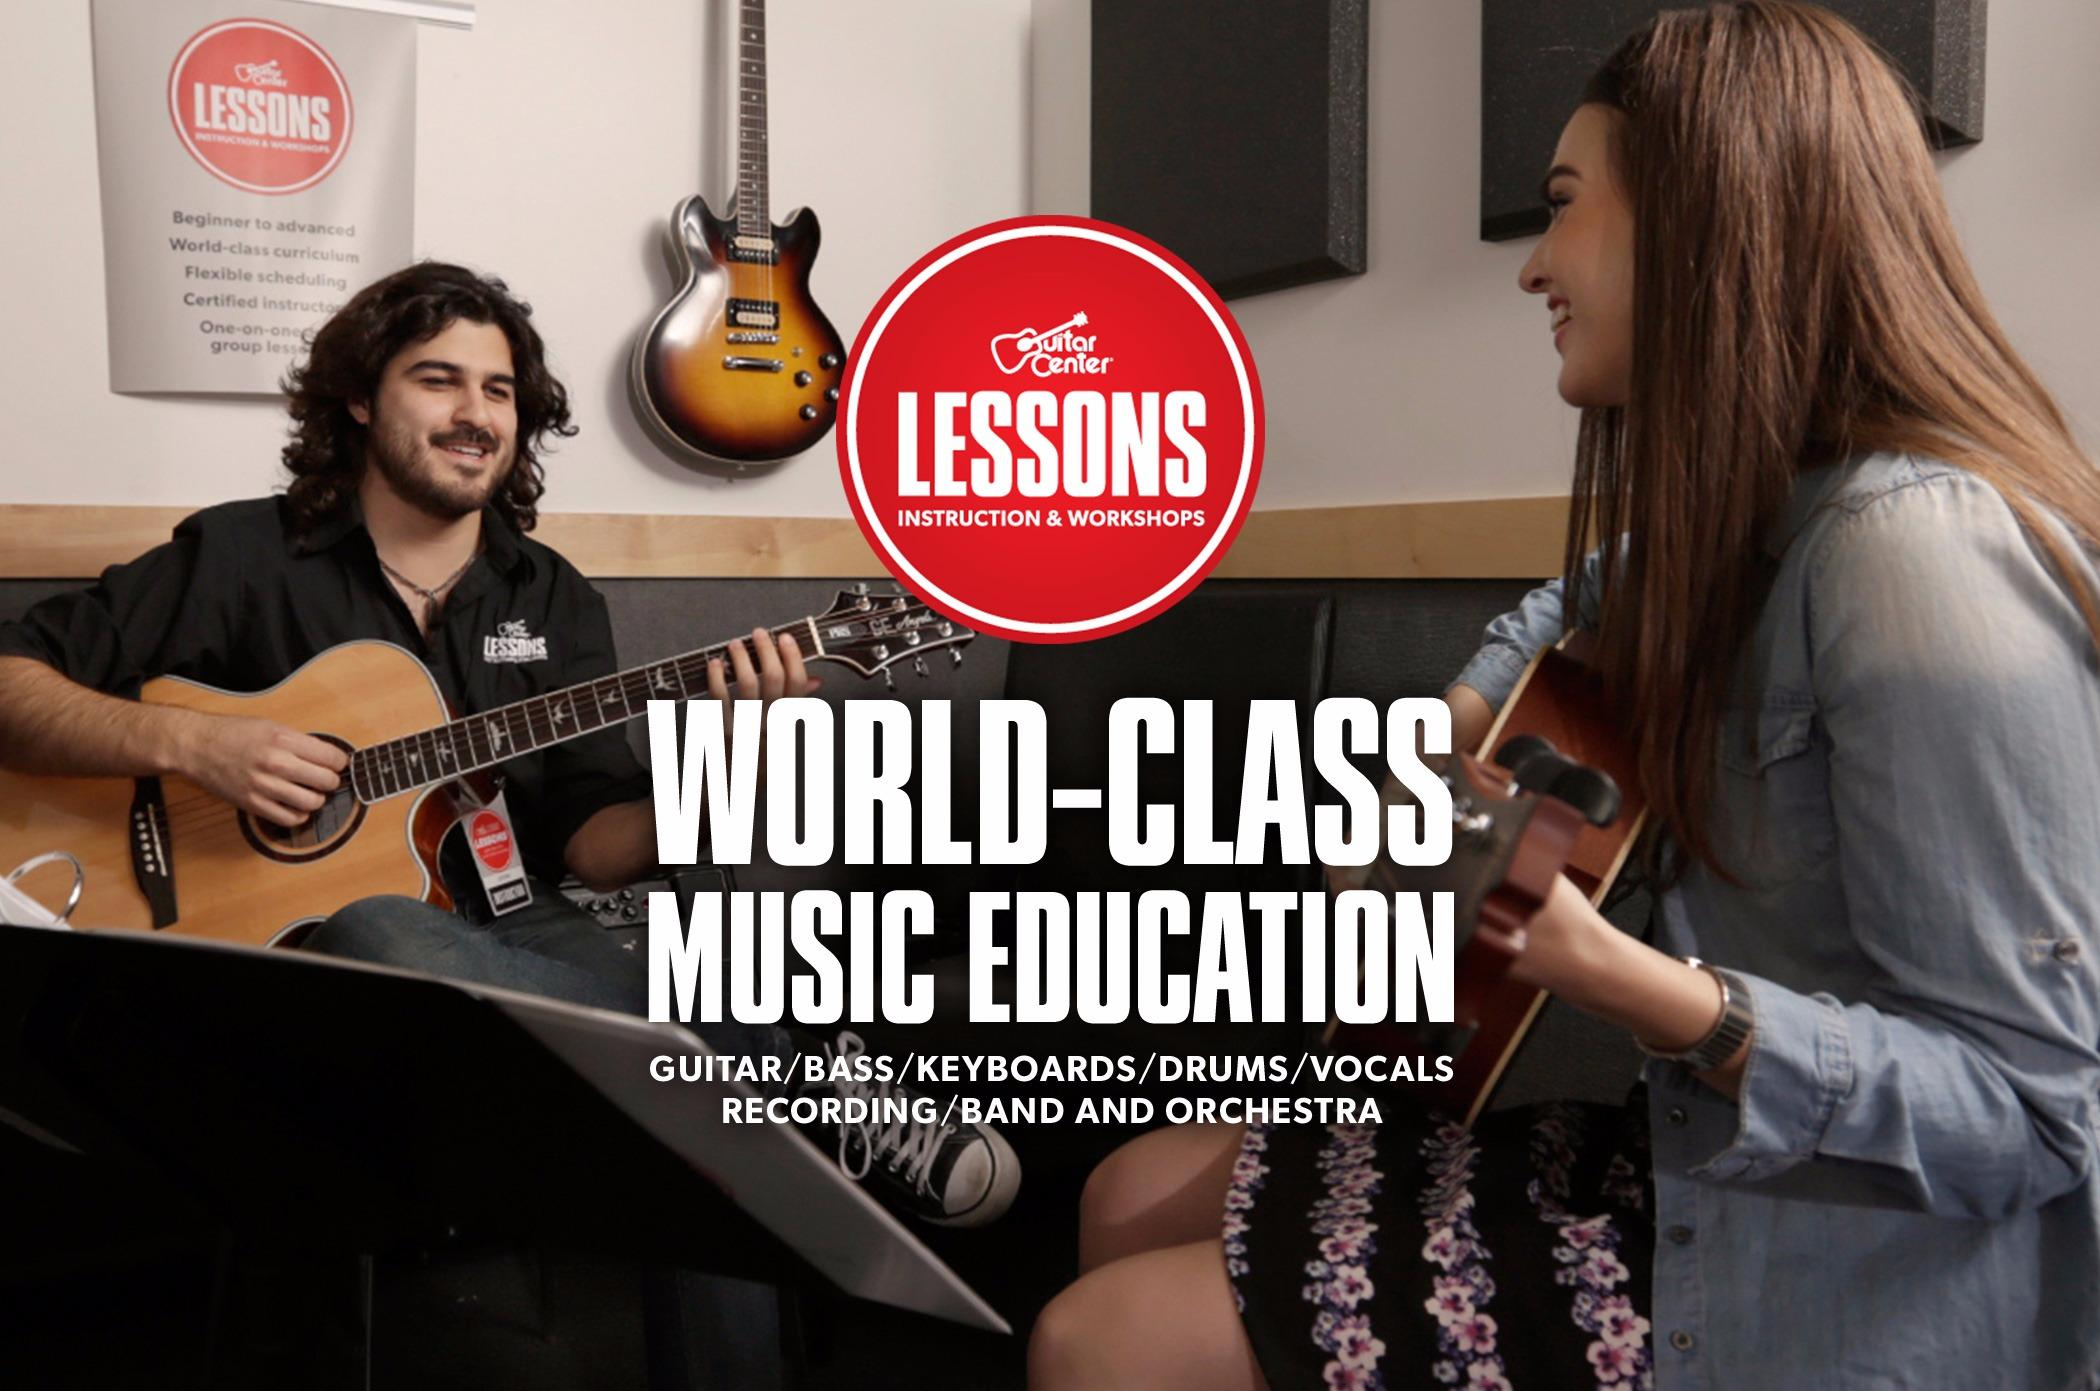 """Sep 22, · Free Guitar Videos features guitar lessons for beginners, blues, acoustic, jazz, country, metal, and electric guitar. Learn how to play guitar with high quality lessons from professional teachers"""". These nicely shot videos enable you to tap into any guitar genre and technique, independent of your type of guitar."""